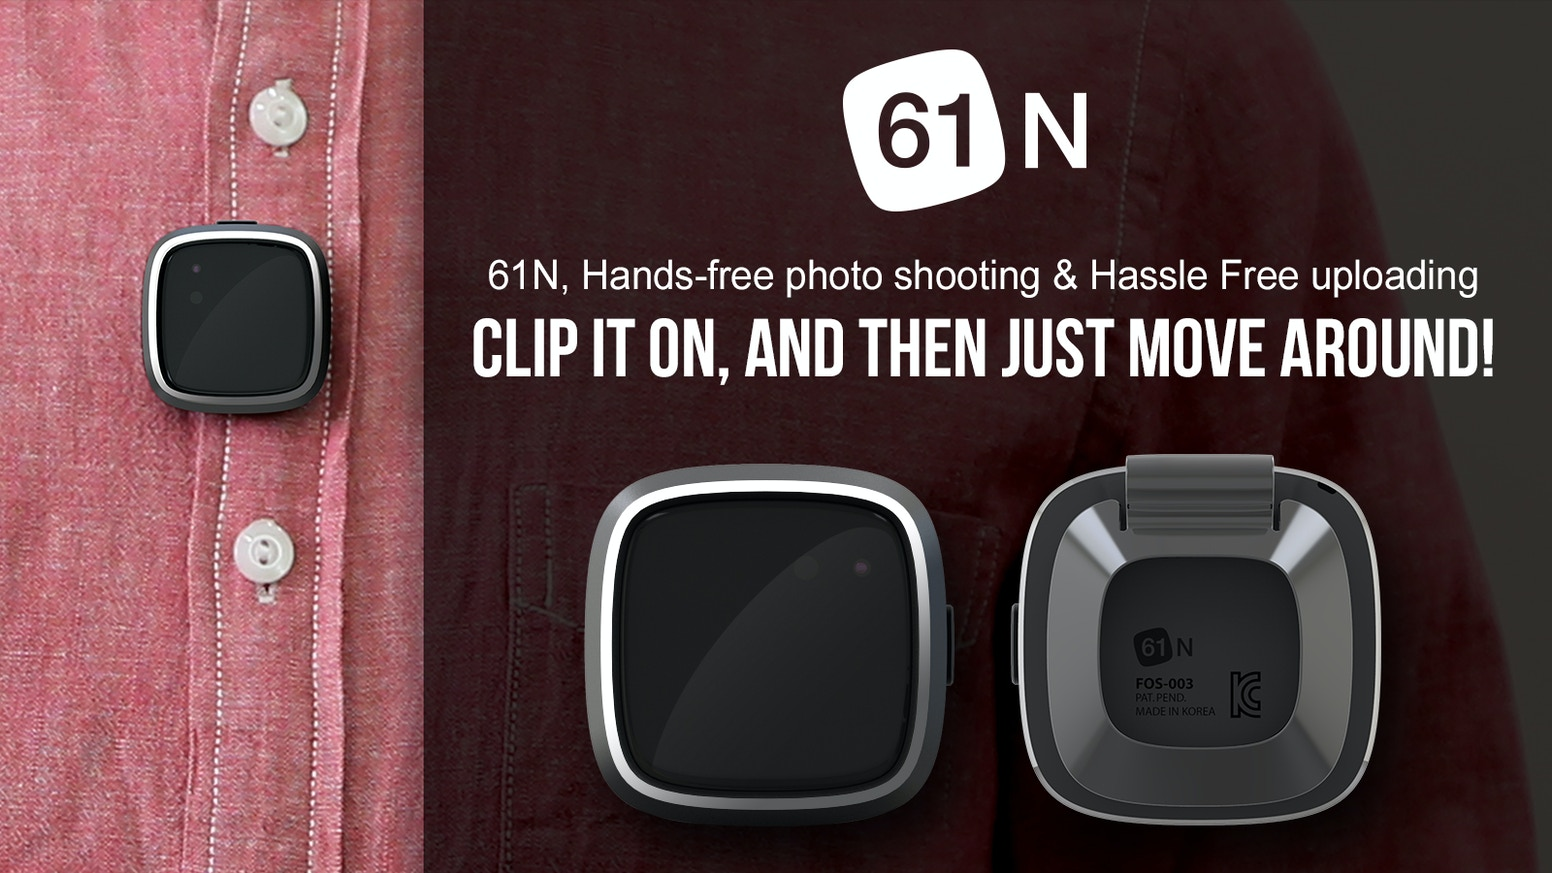 A wearable camera giving you complete freedom when shooting & uploading your photos.Simply use the 61N App to see and save your photos.